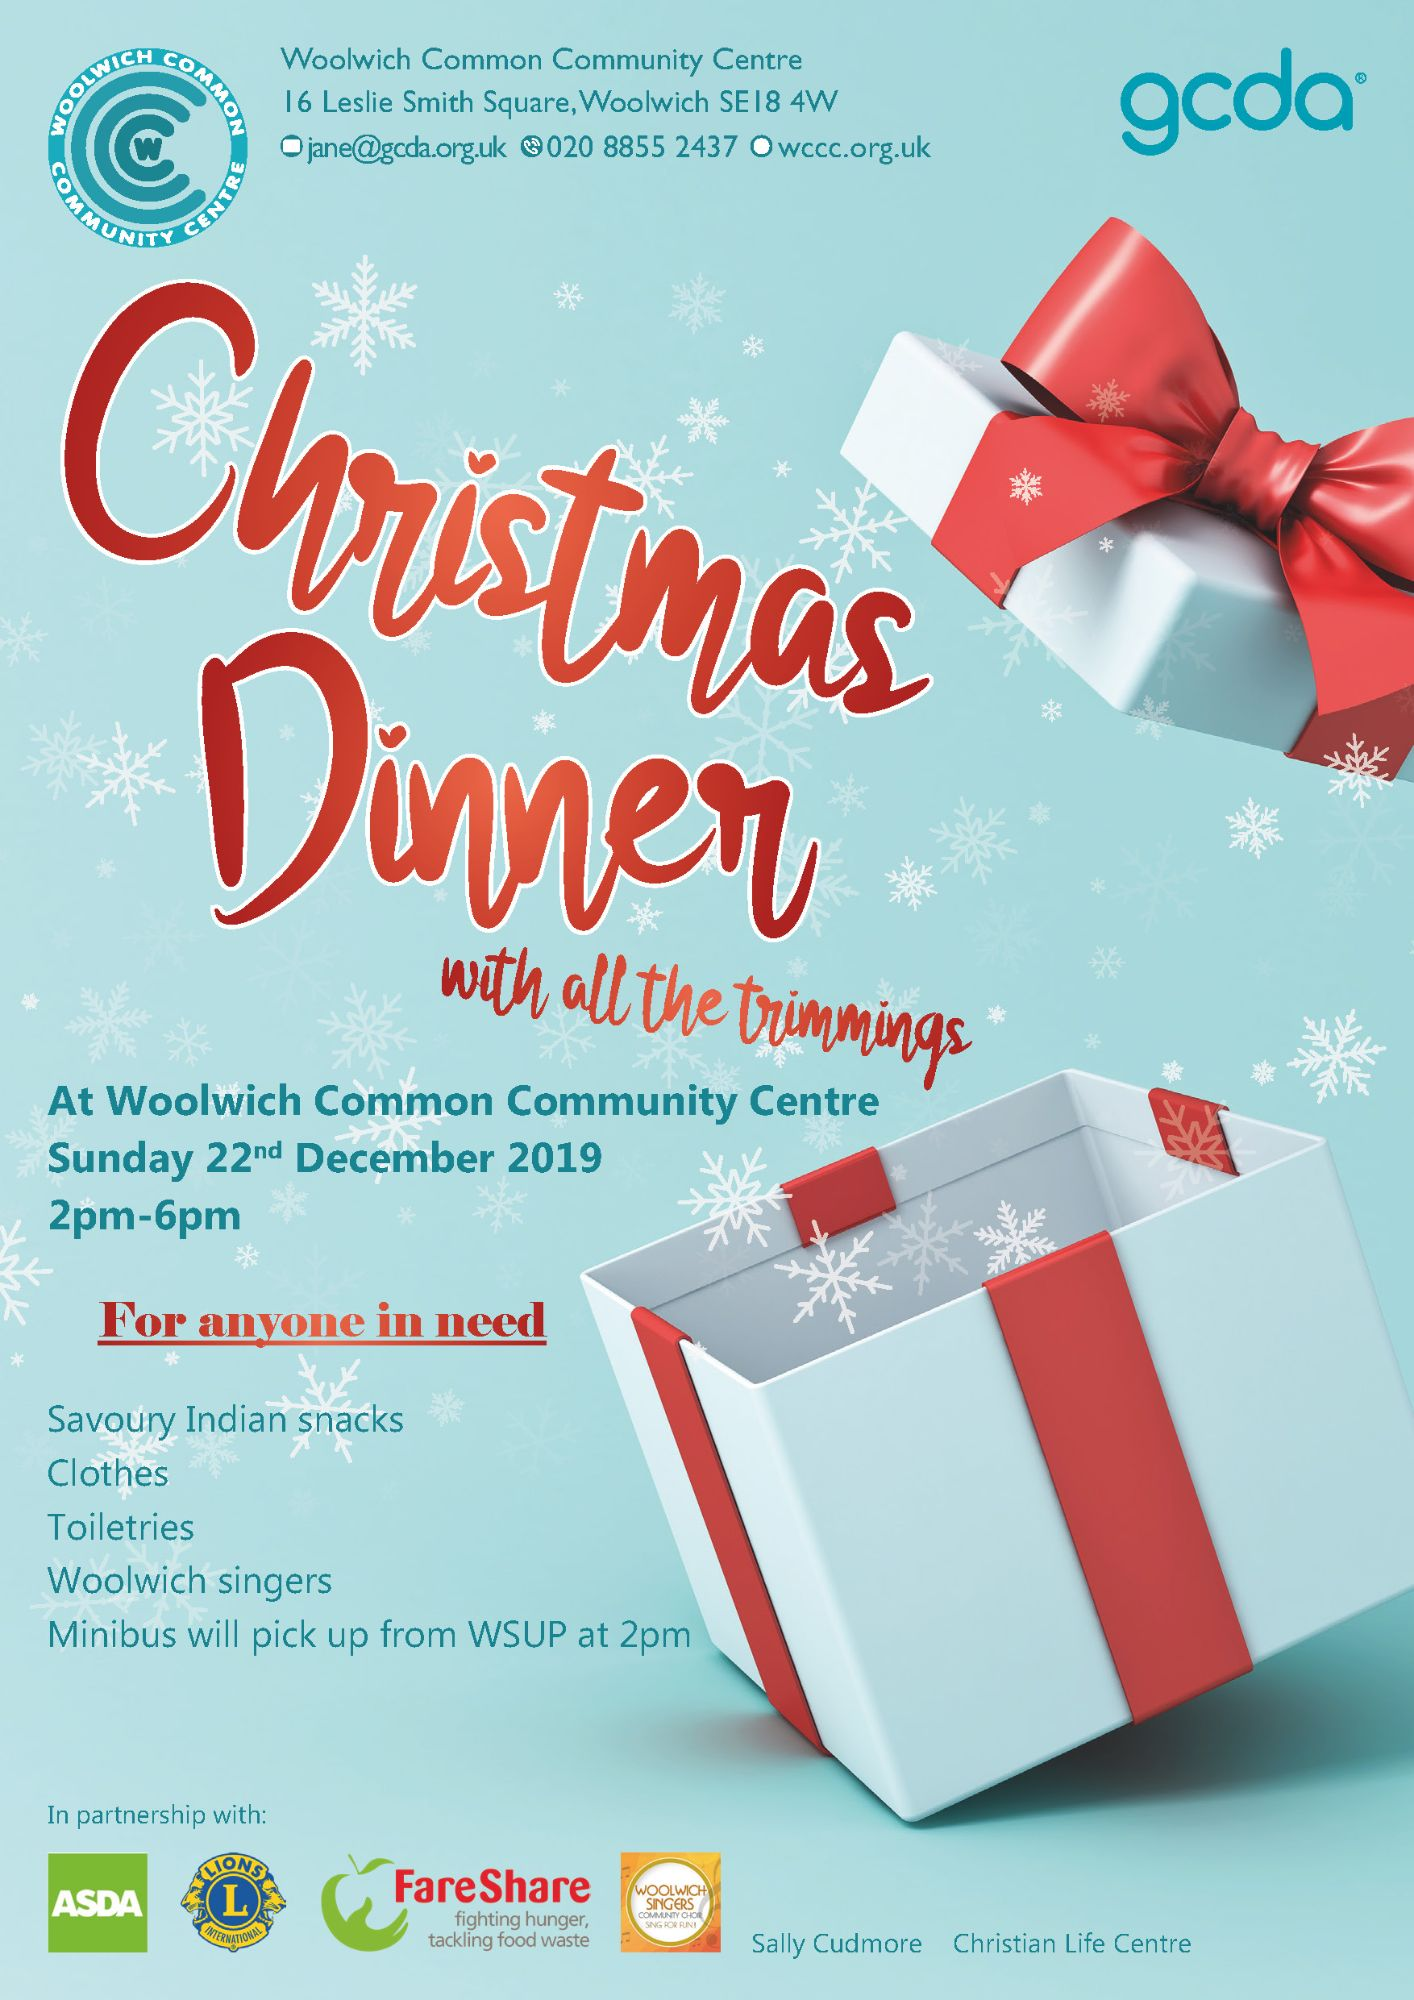 Christmas Flyer 2019 homeless